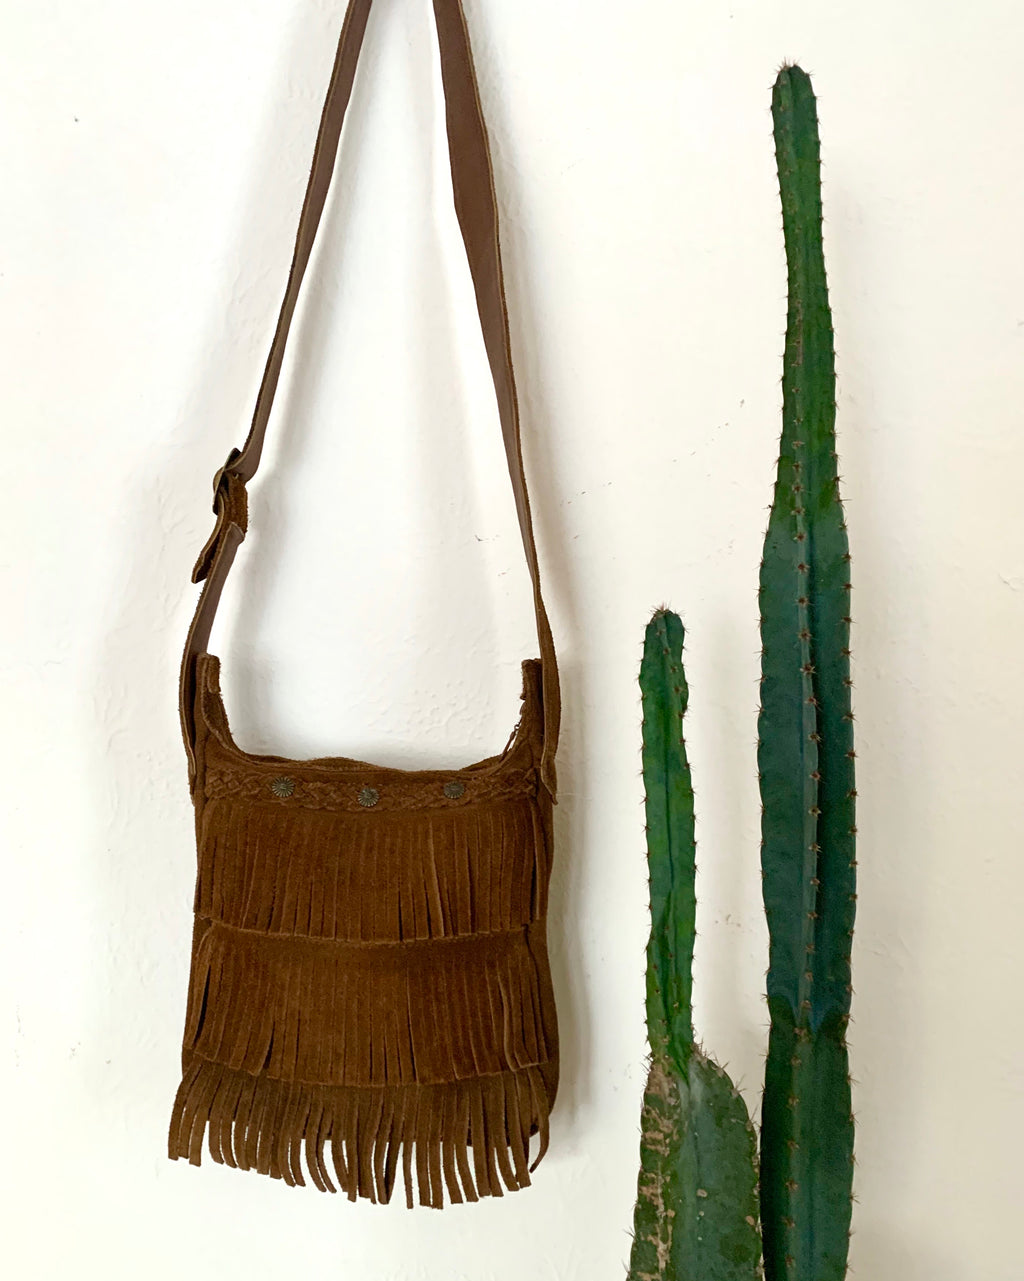 Vintage Suede Leather Crossbody with Fringe